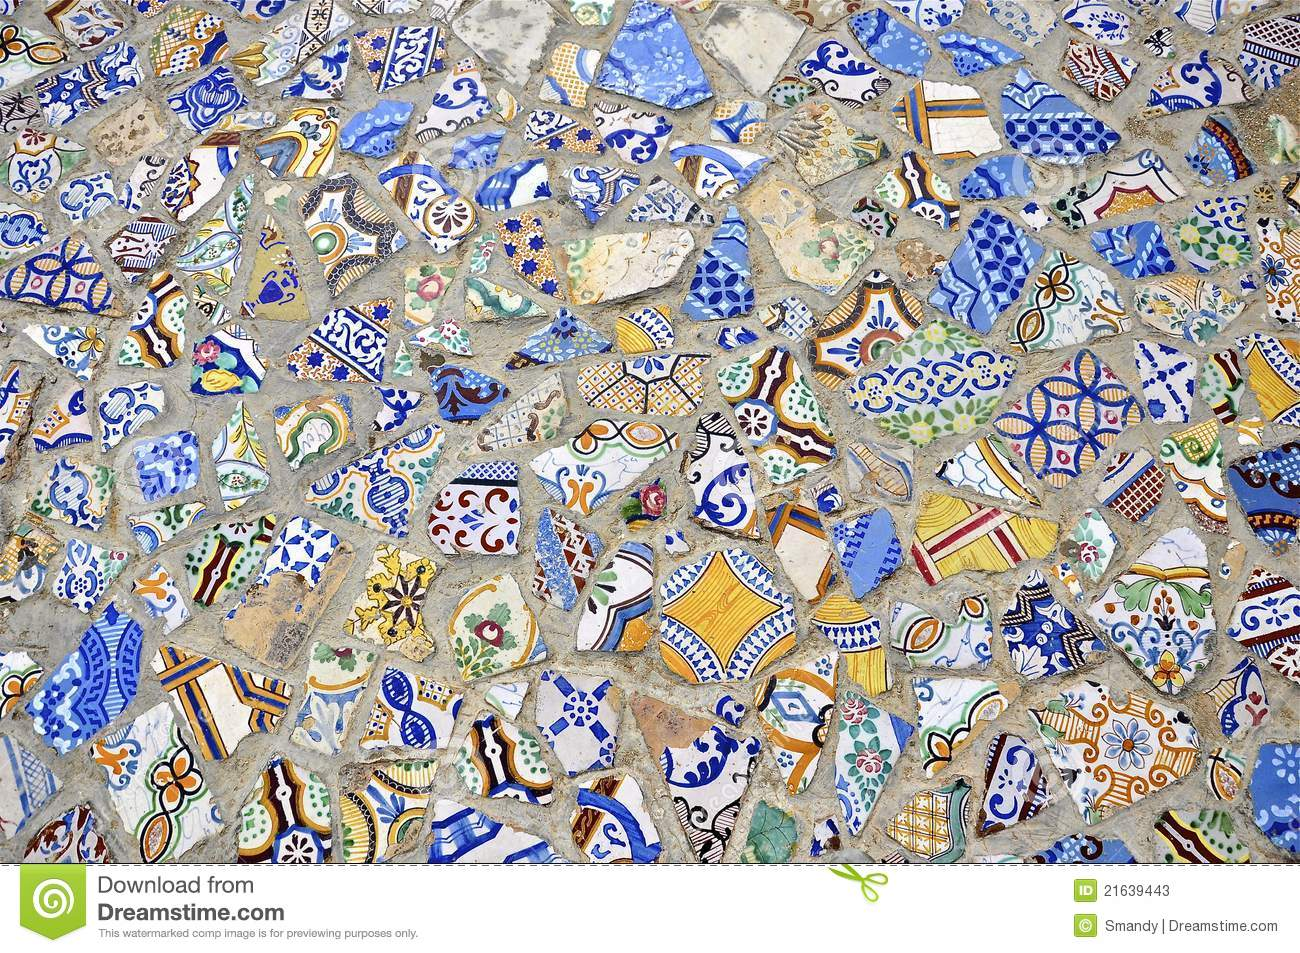 mosaic tiles floor design stock photos - Mosaic Tiles